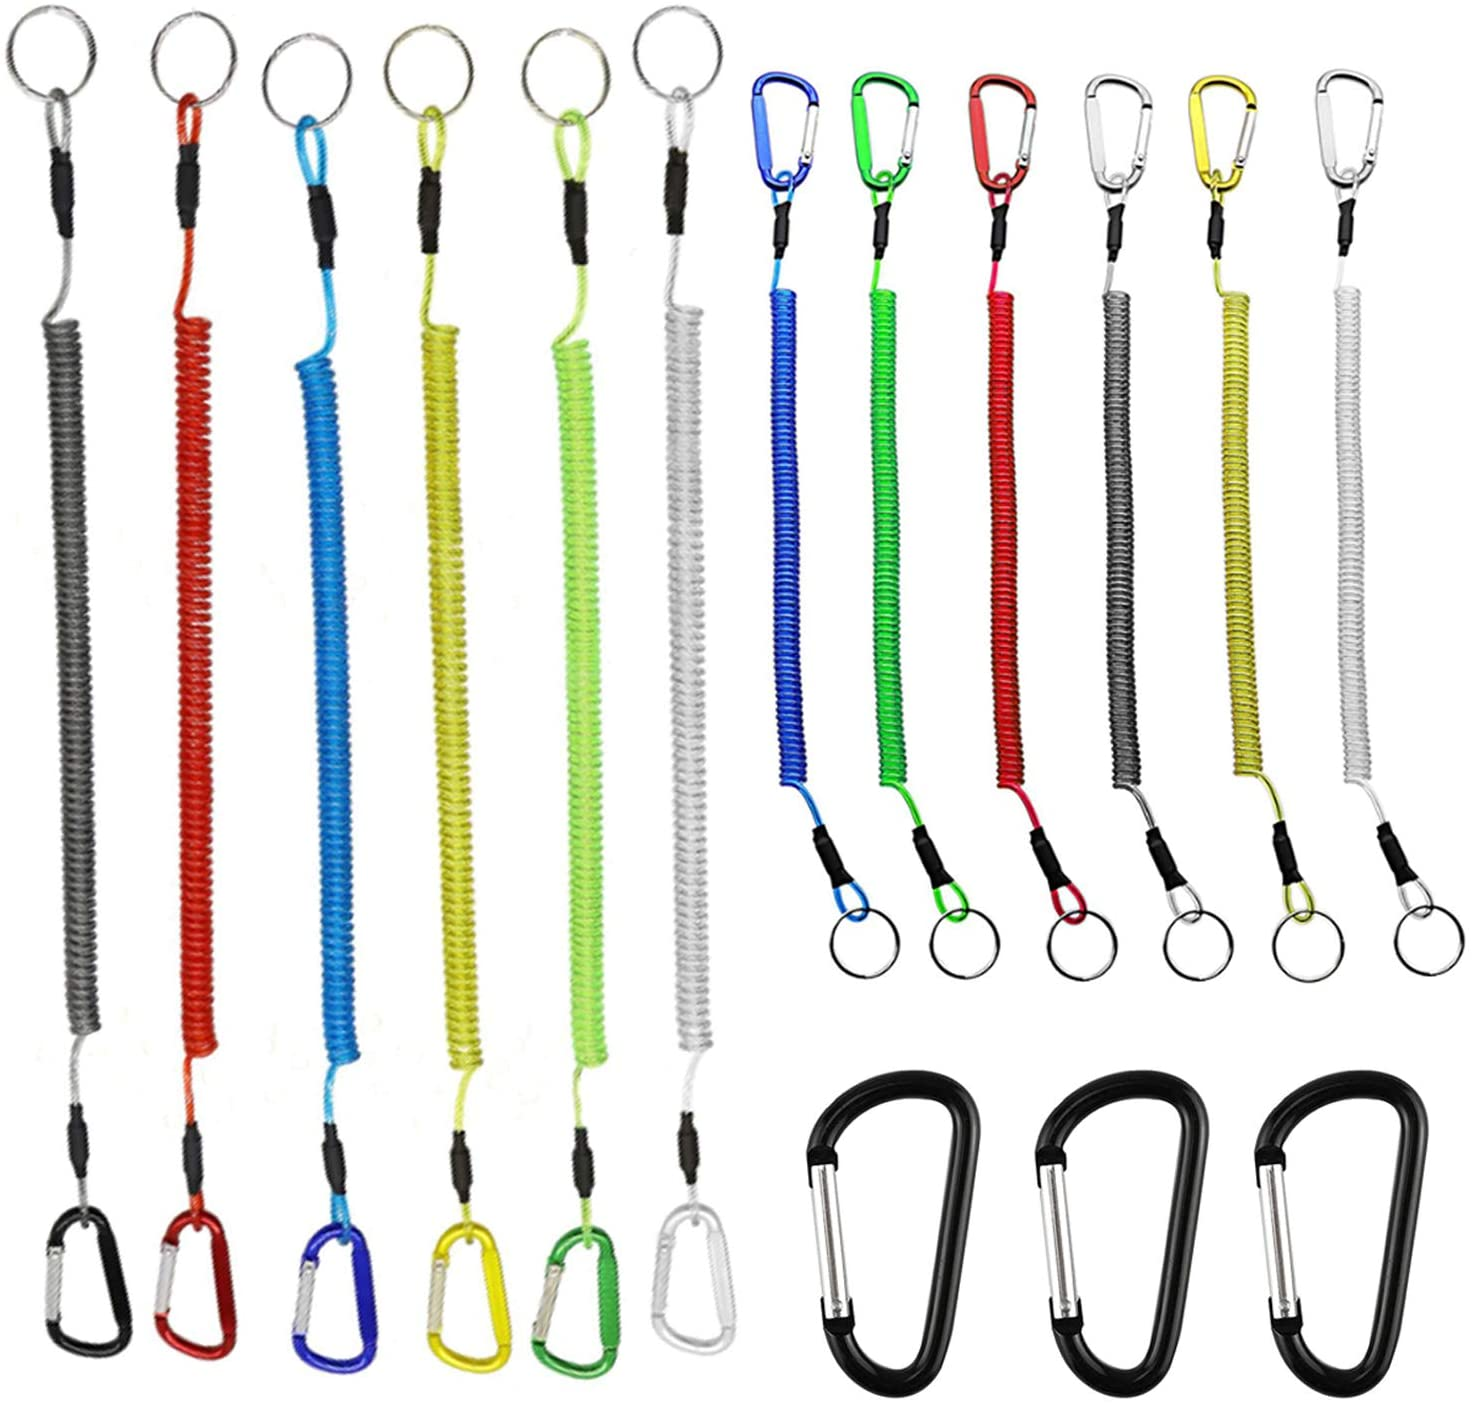 Generic Brands 12 Pieces Fishing Coil Lanyard Multi-Color Heavy-Duty Safety Rowing Rope Retractable Wire Fishing Tool Lanyard, Suitable for Pliers, Boating and Tools (with 3 Carabiner)